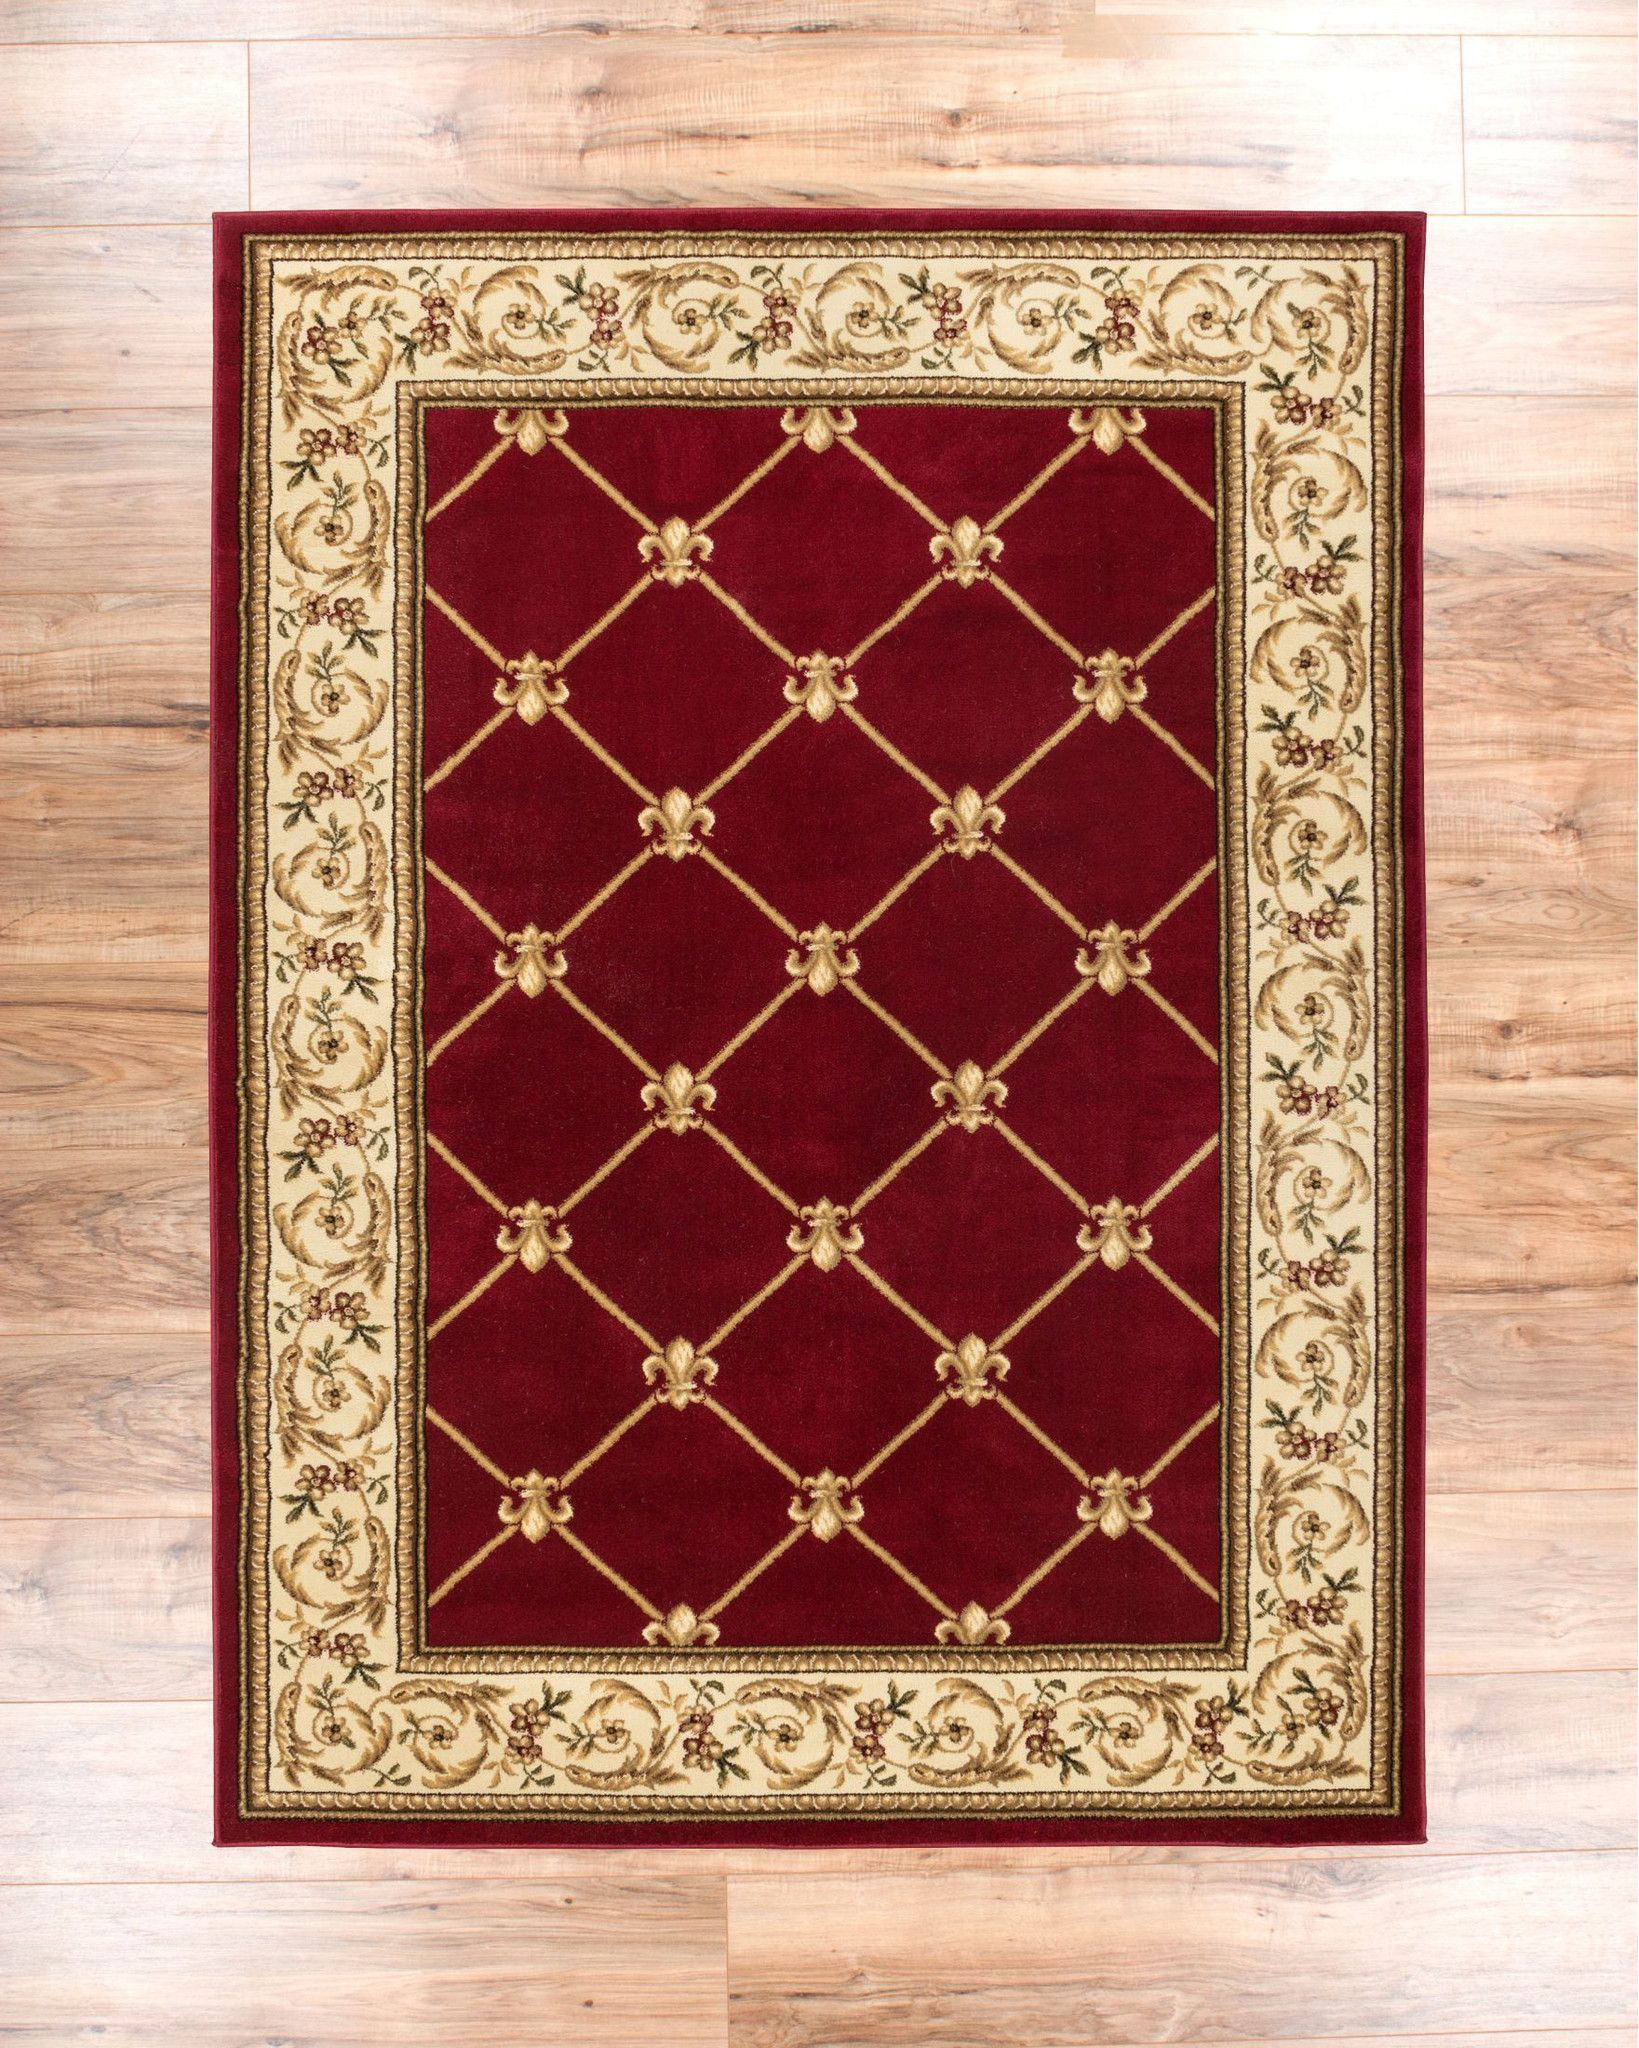 Patrician Trellis Red European Traditional Area Rug